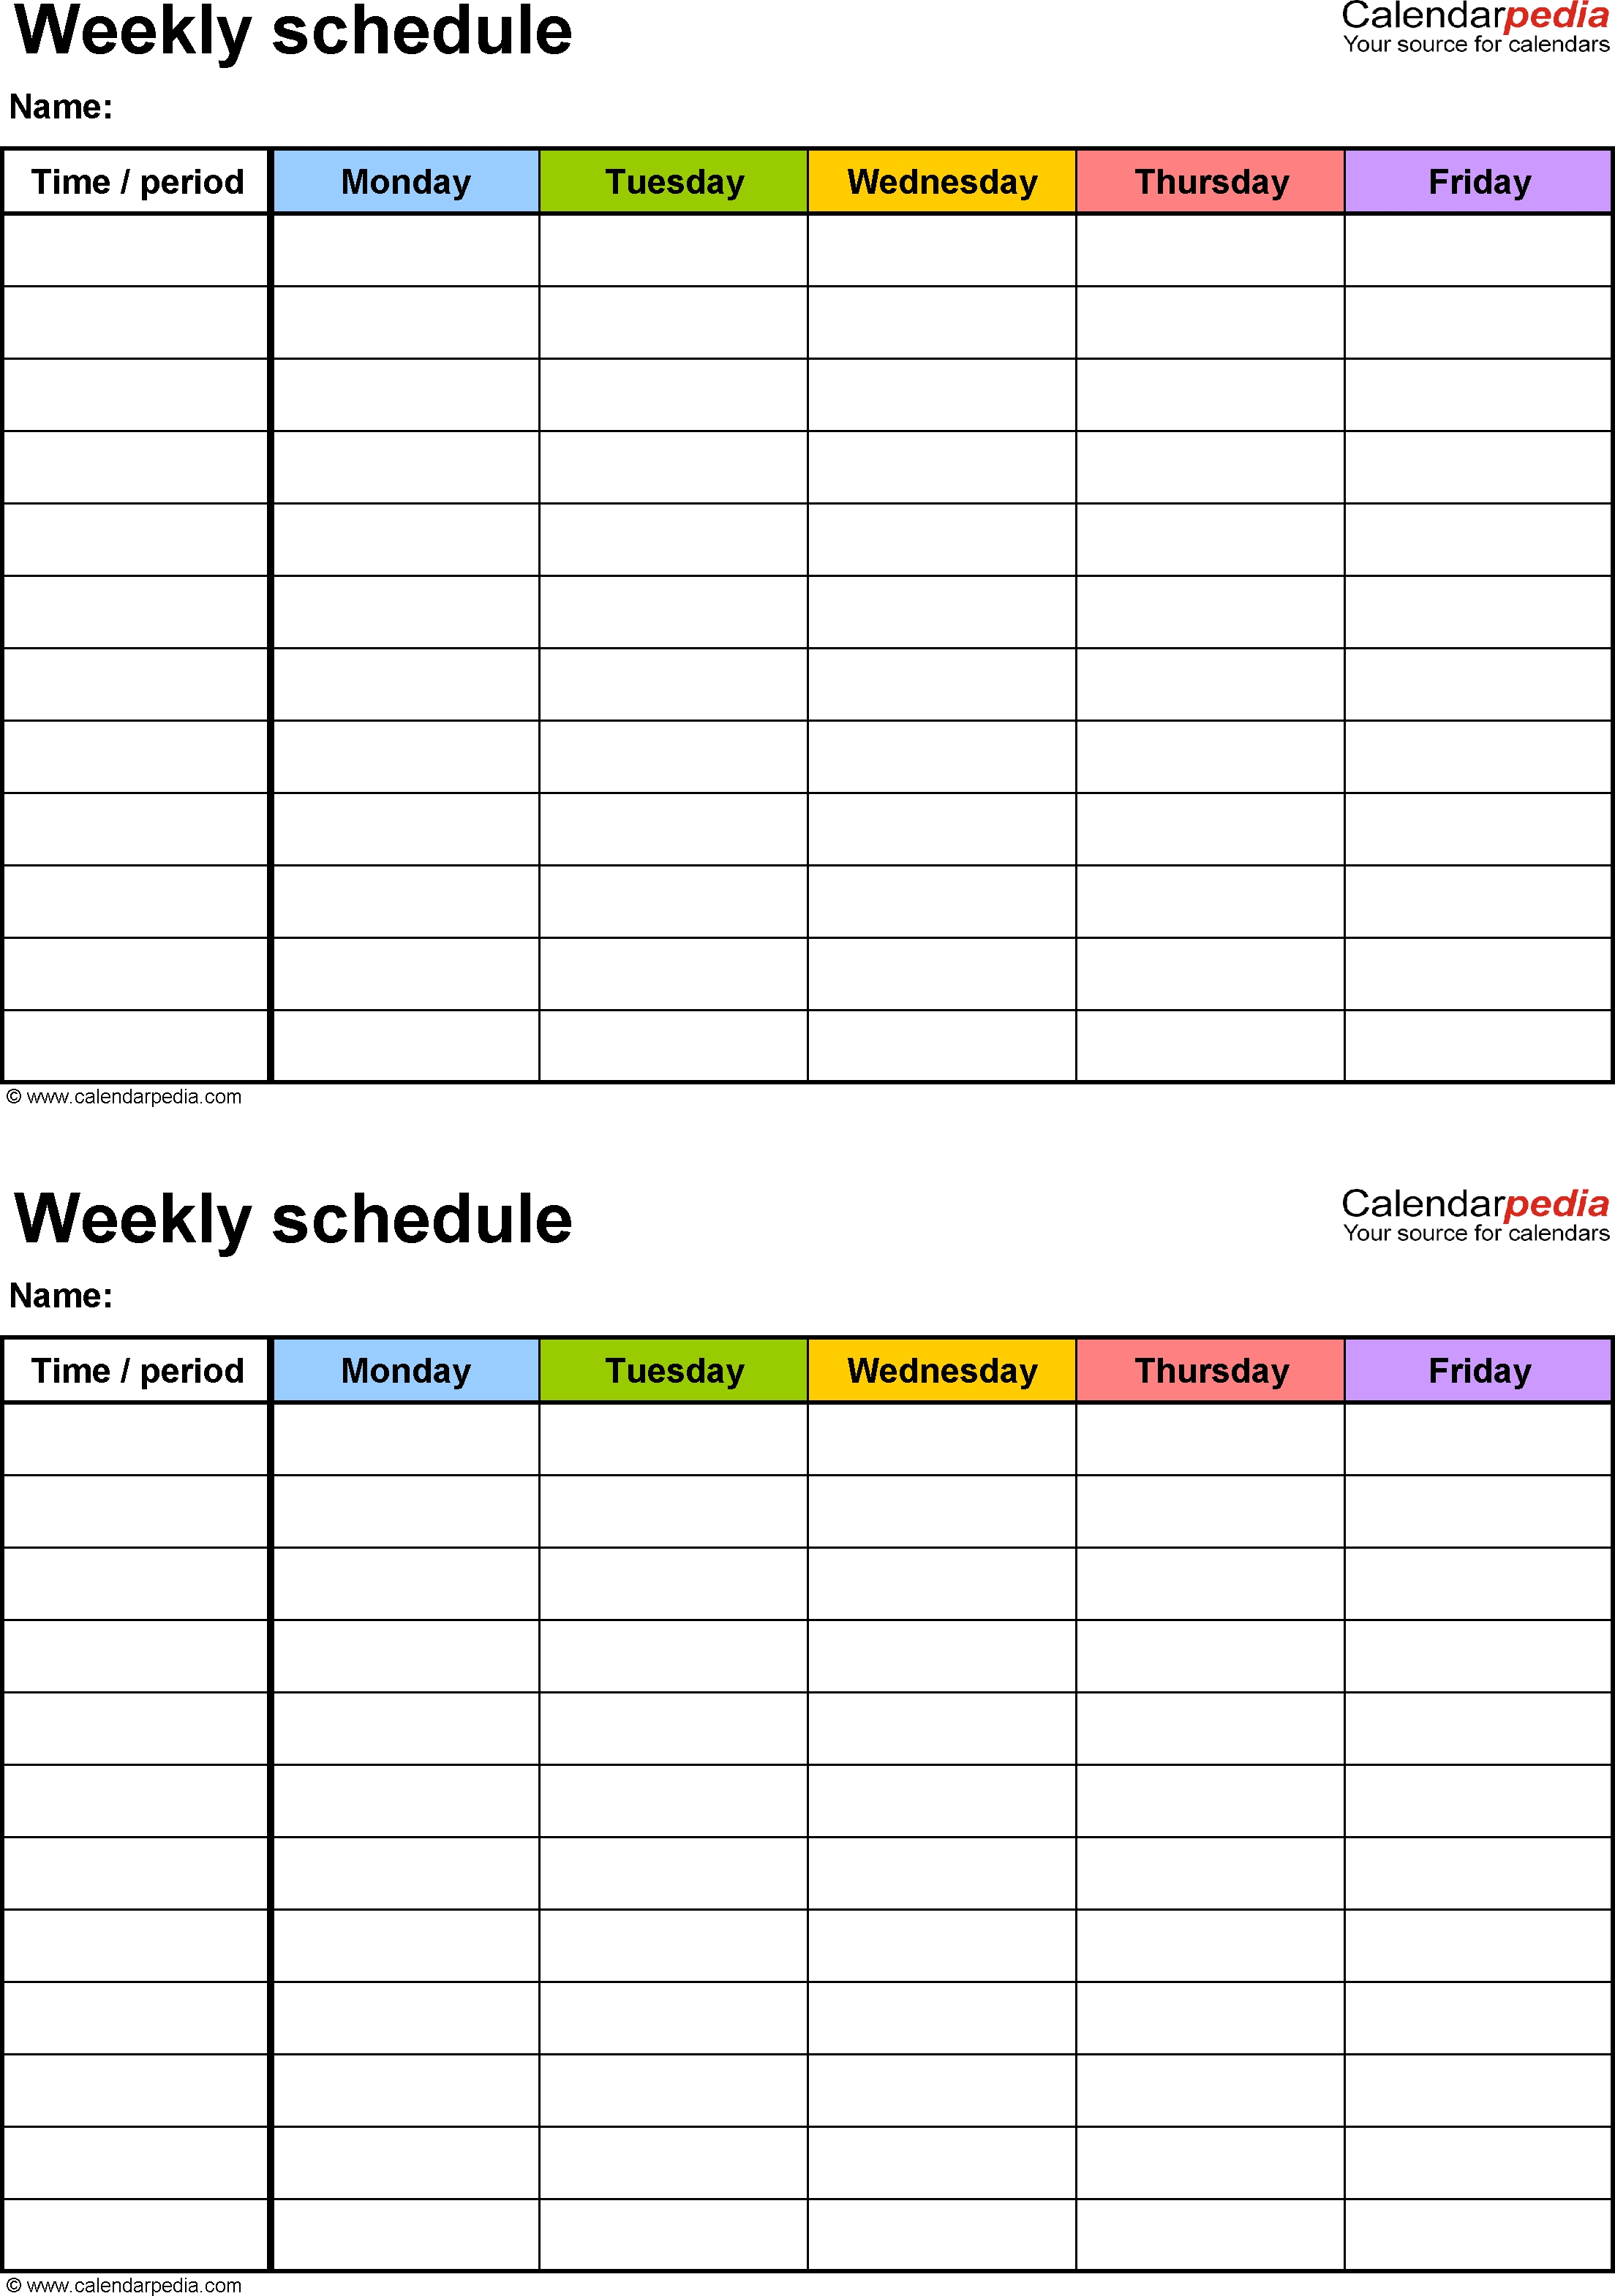 Weekly Schedule Template For Pdf Version 3: 2 Schedules On One Page inside Free Printable Hourly Weekly Schedule Pdf